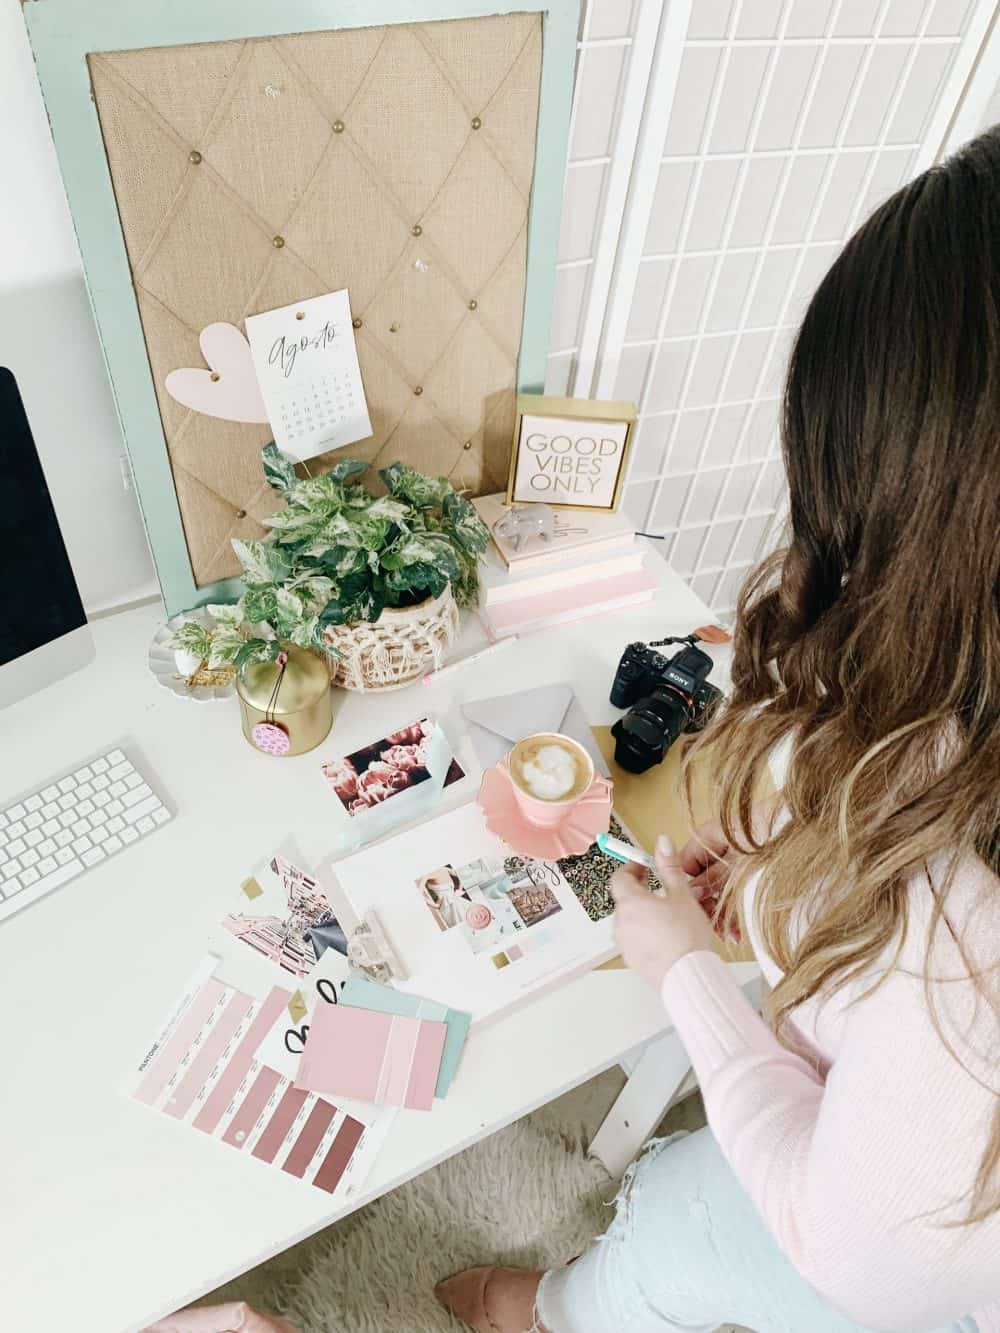 Branding process on a pink desk with candles, coffee, pantone colors and plants